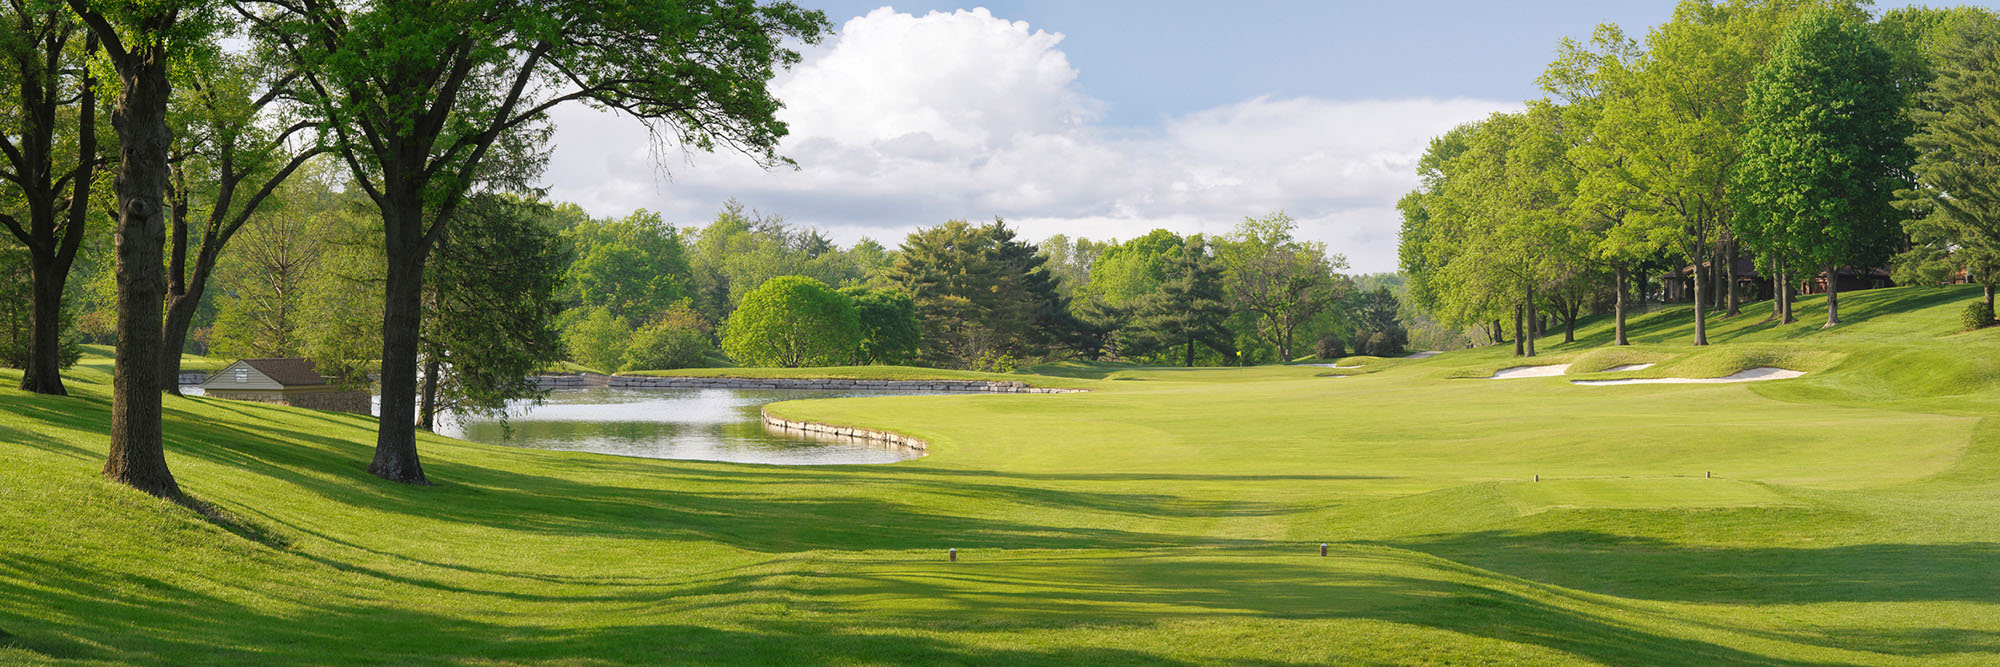 Golf Course Image - Forest Hills Country Club No. 3